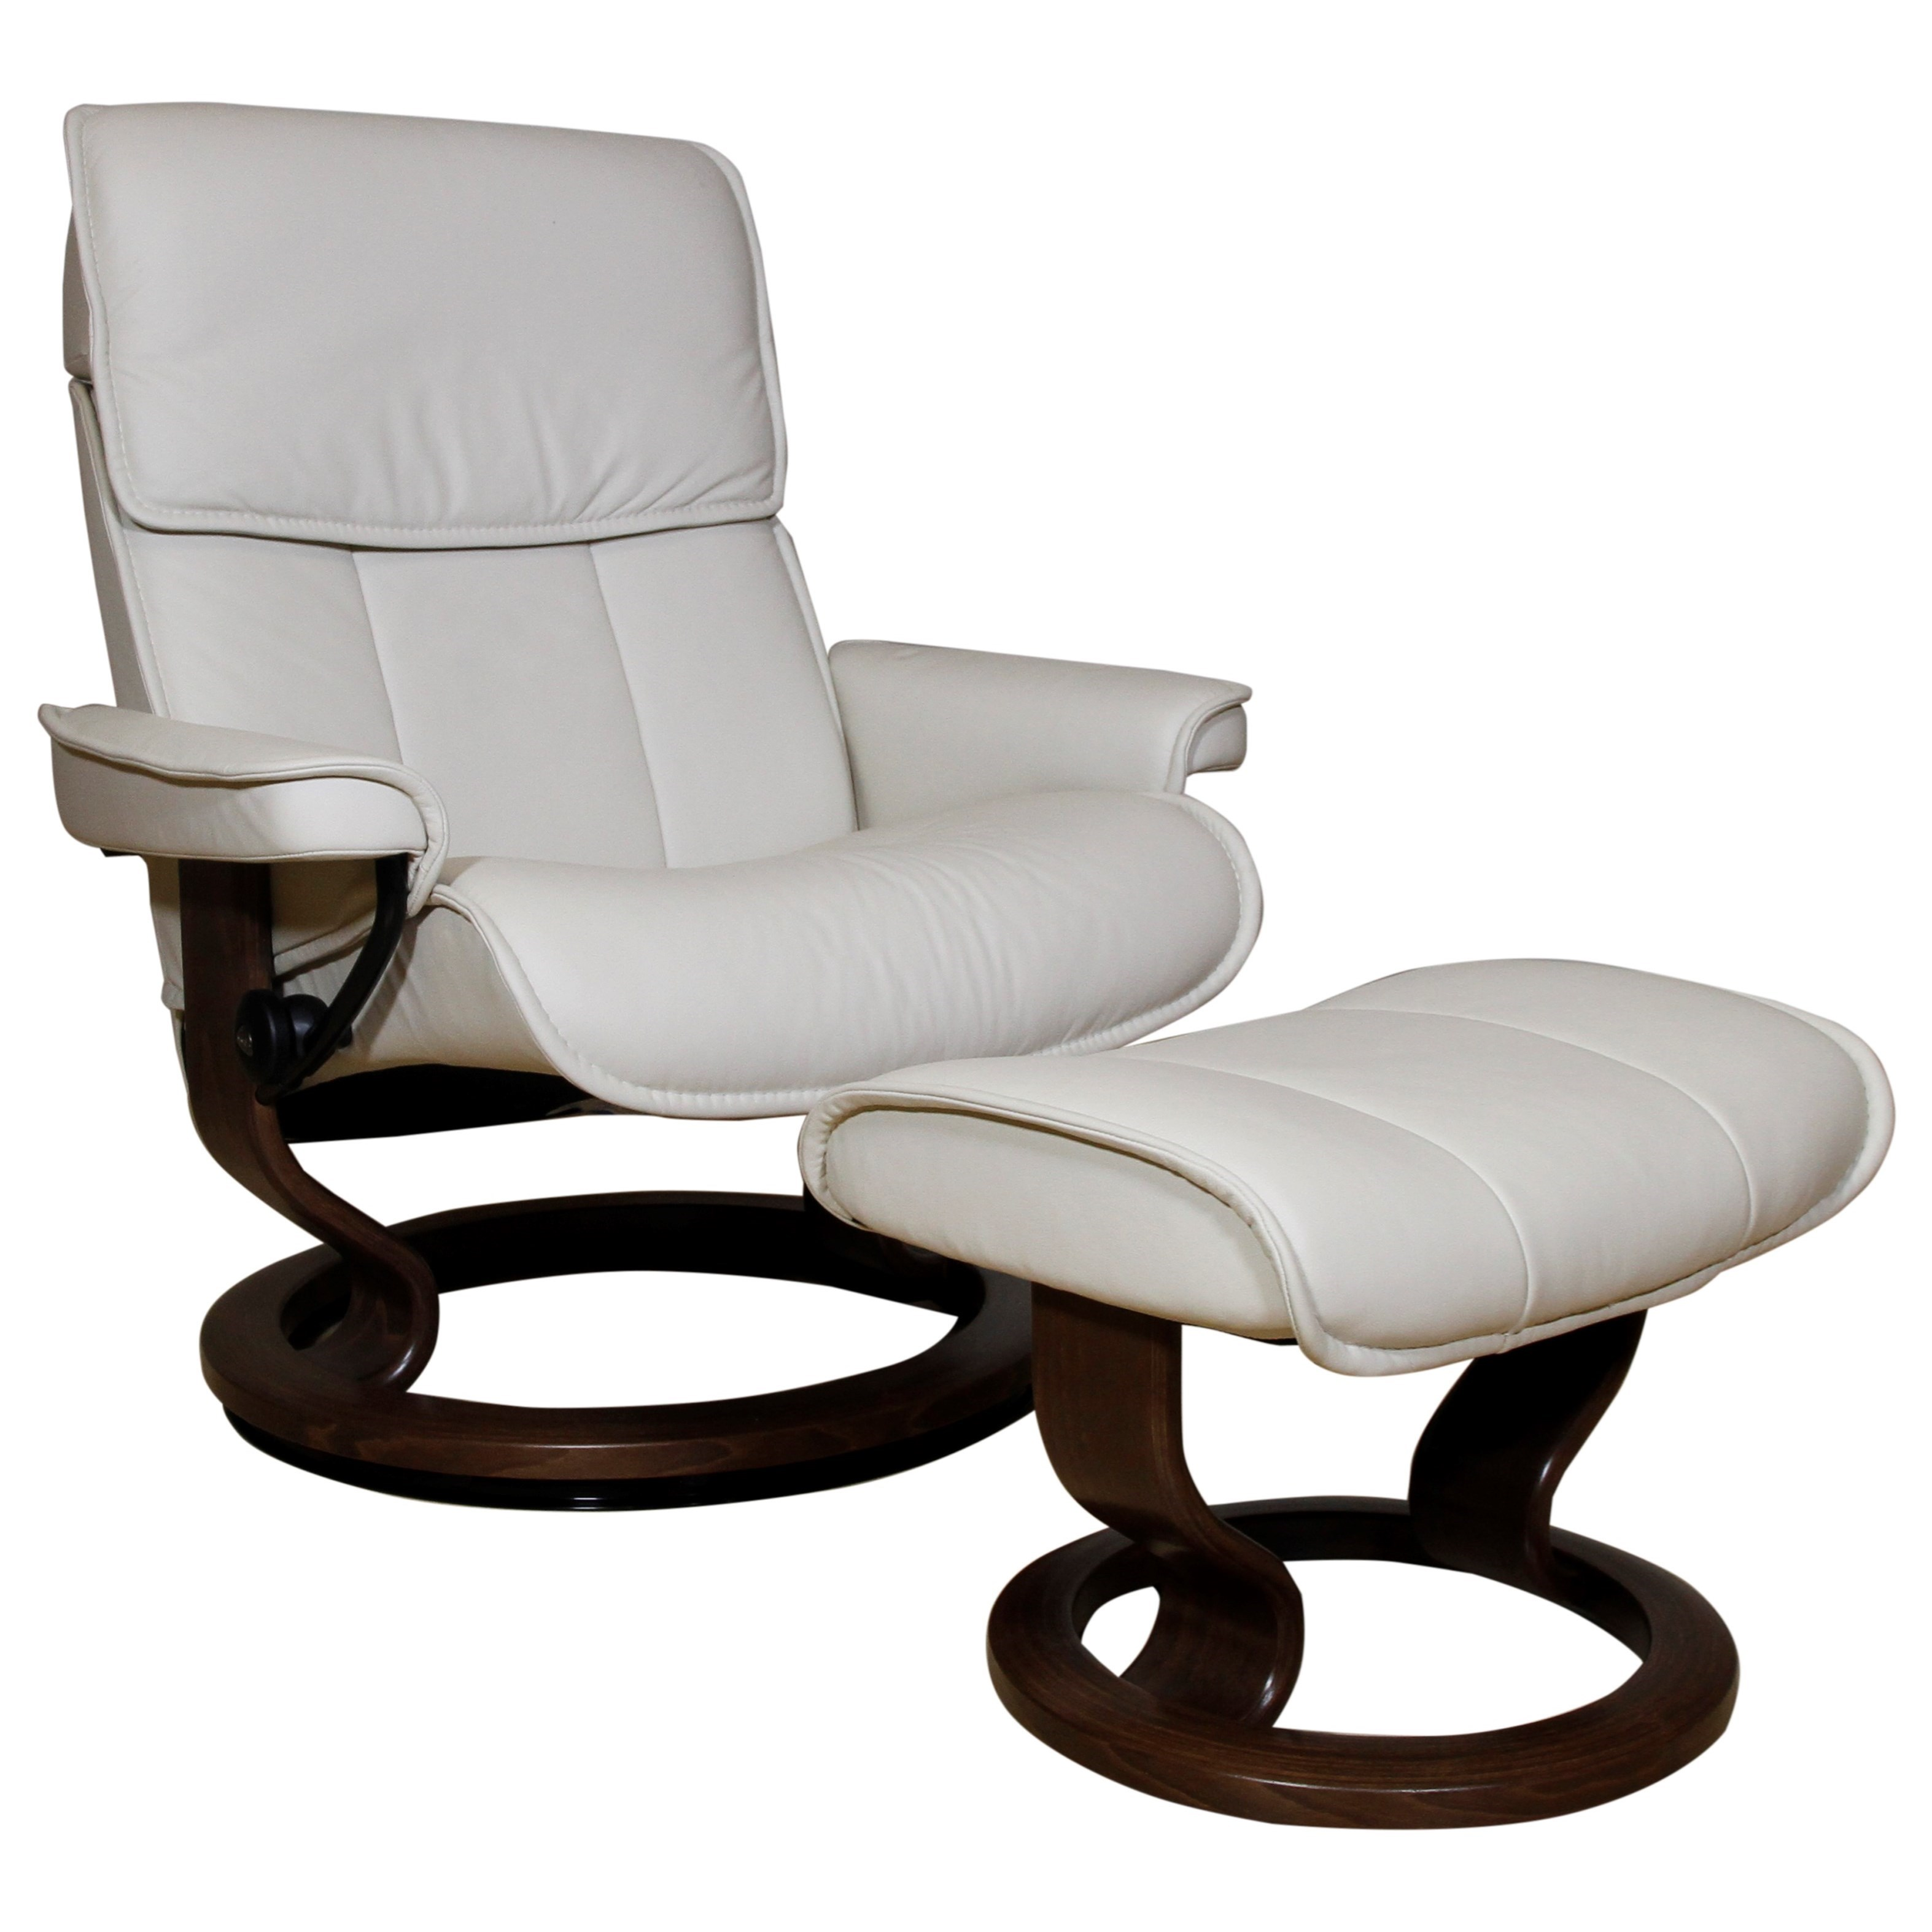 Admiral Medium Reclining Chair and Ottoman by Stressless at Bennett's Furniture and Mattresses